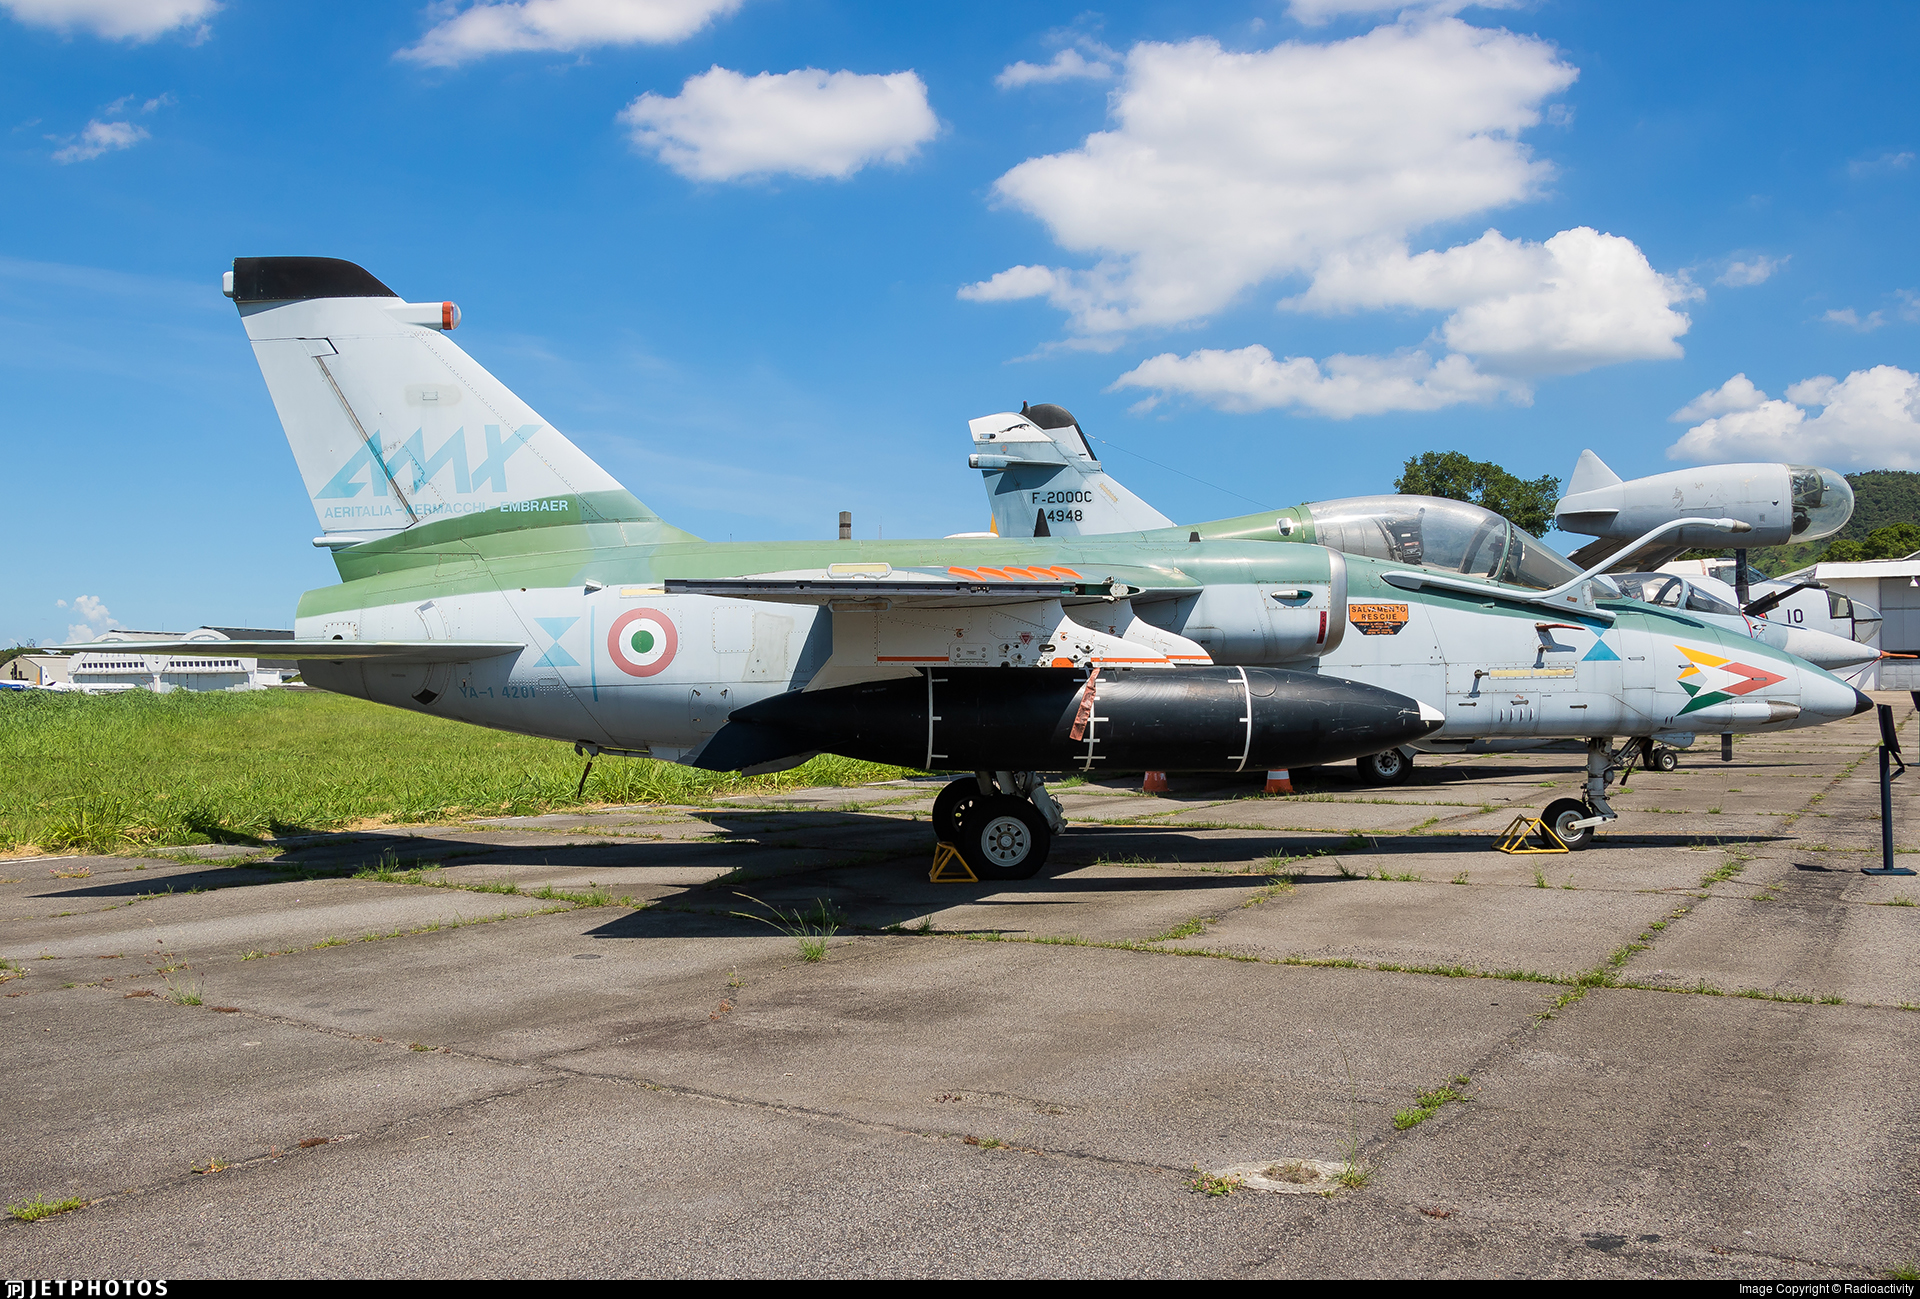 FAB4201 - Alenia/Aermacchi/Embraer AMX - Brazil - Air Force